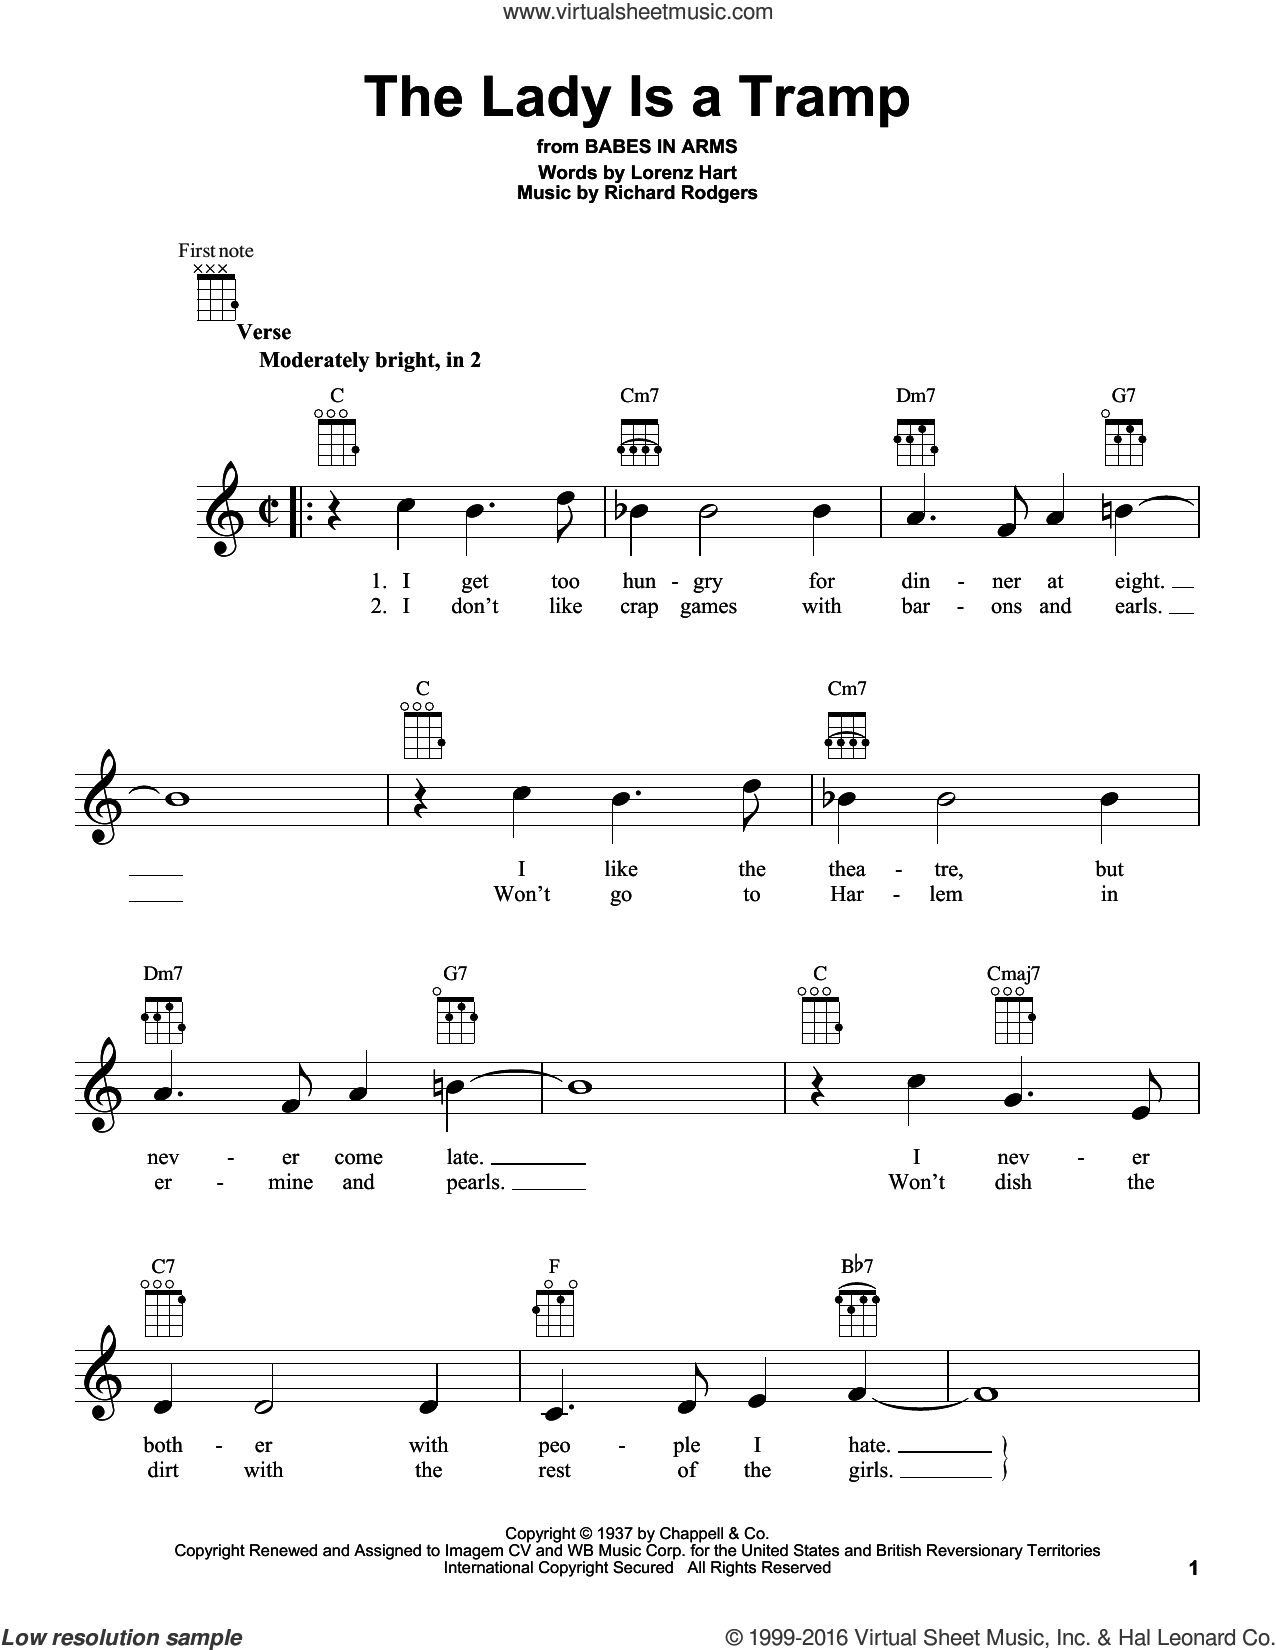 The Lady Is A Tramp sheet music for ukulele by Rodgers & Hart, Lorenz Hart and Richard Rodgers, intermediate skill level